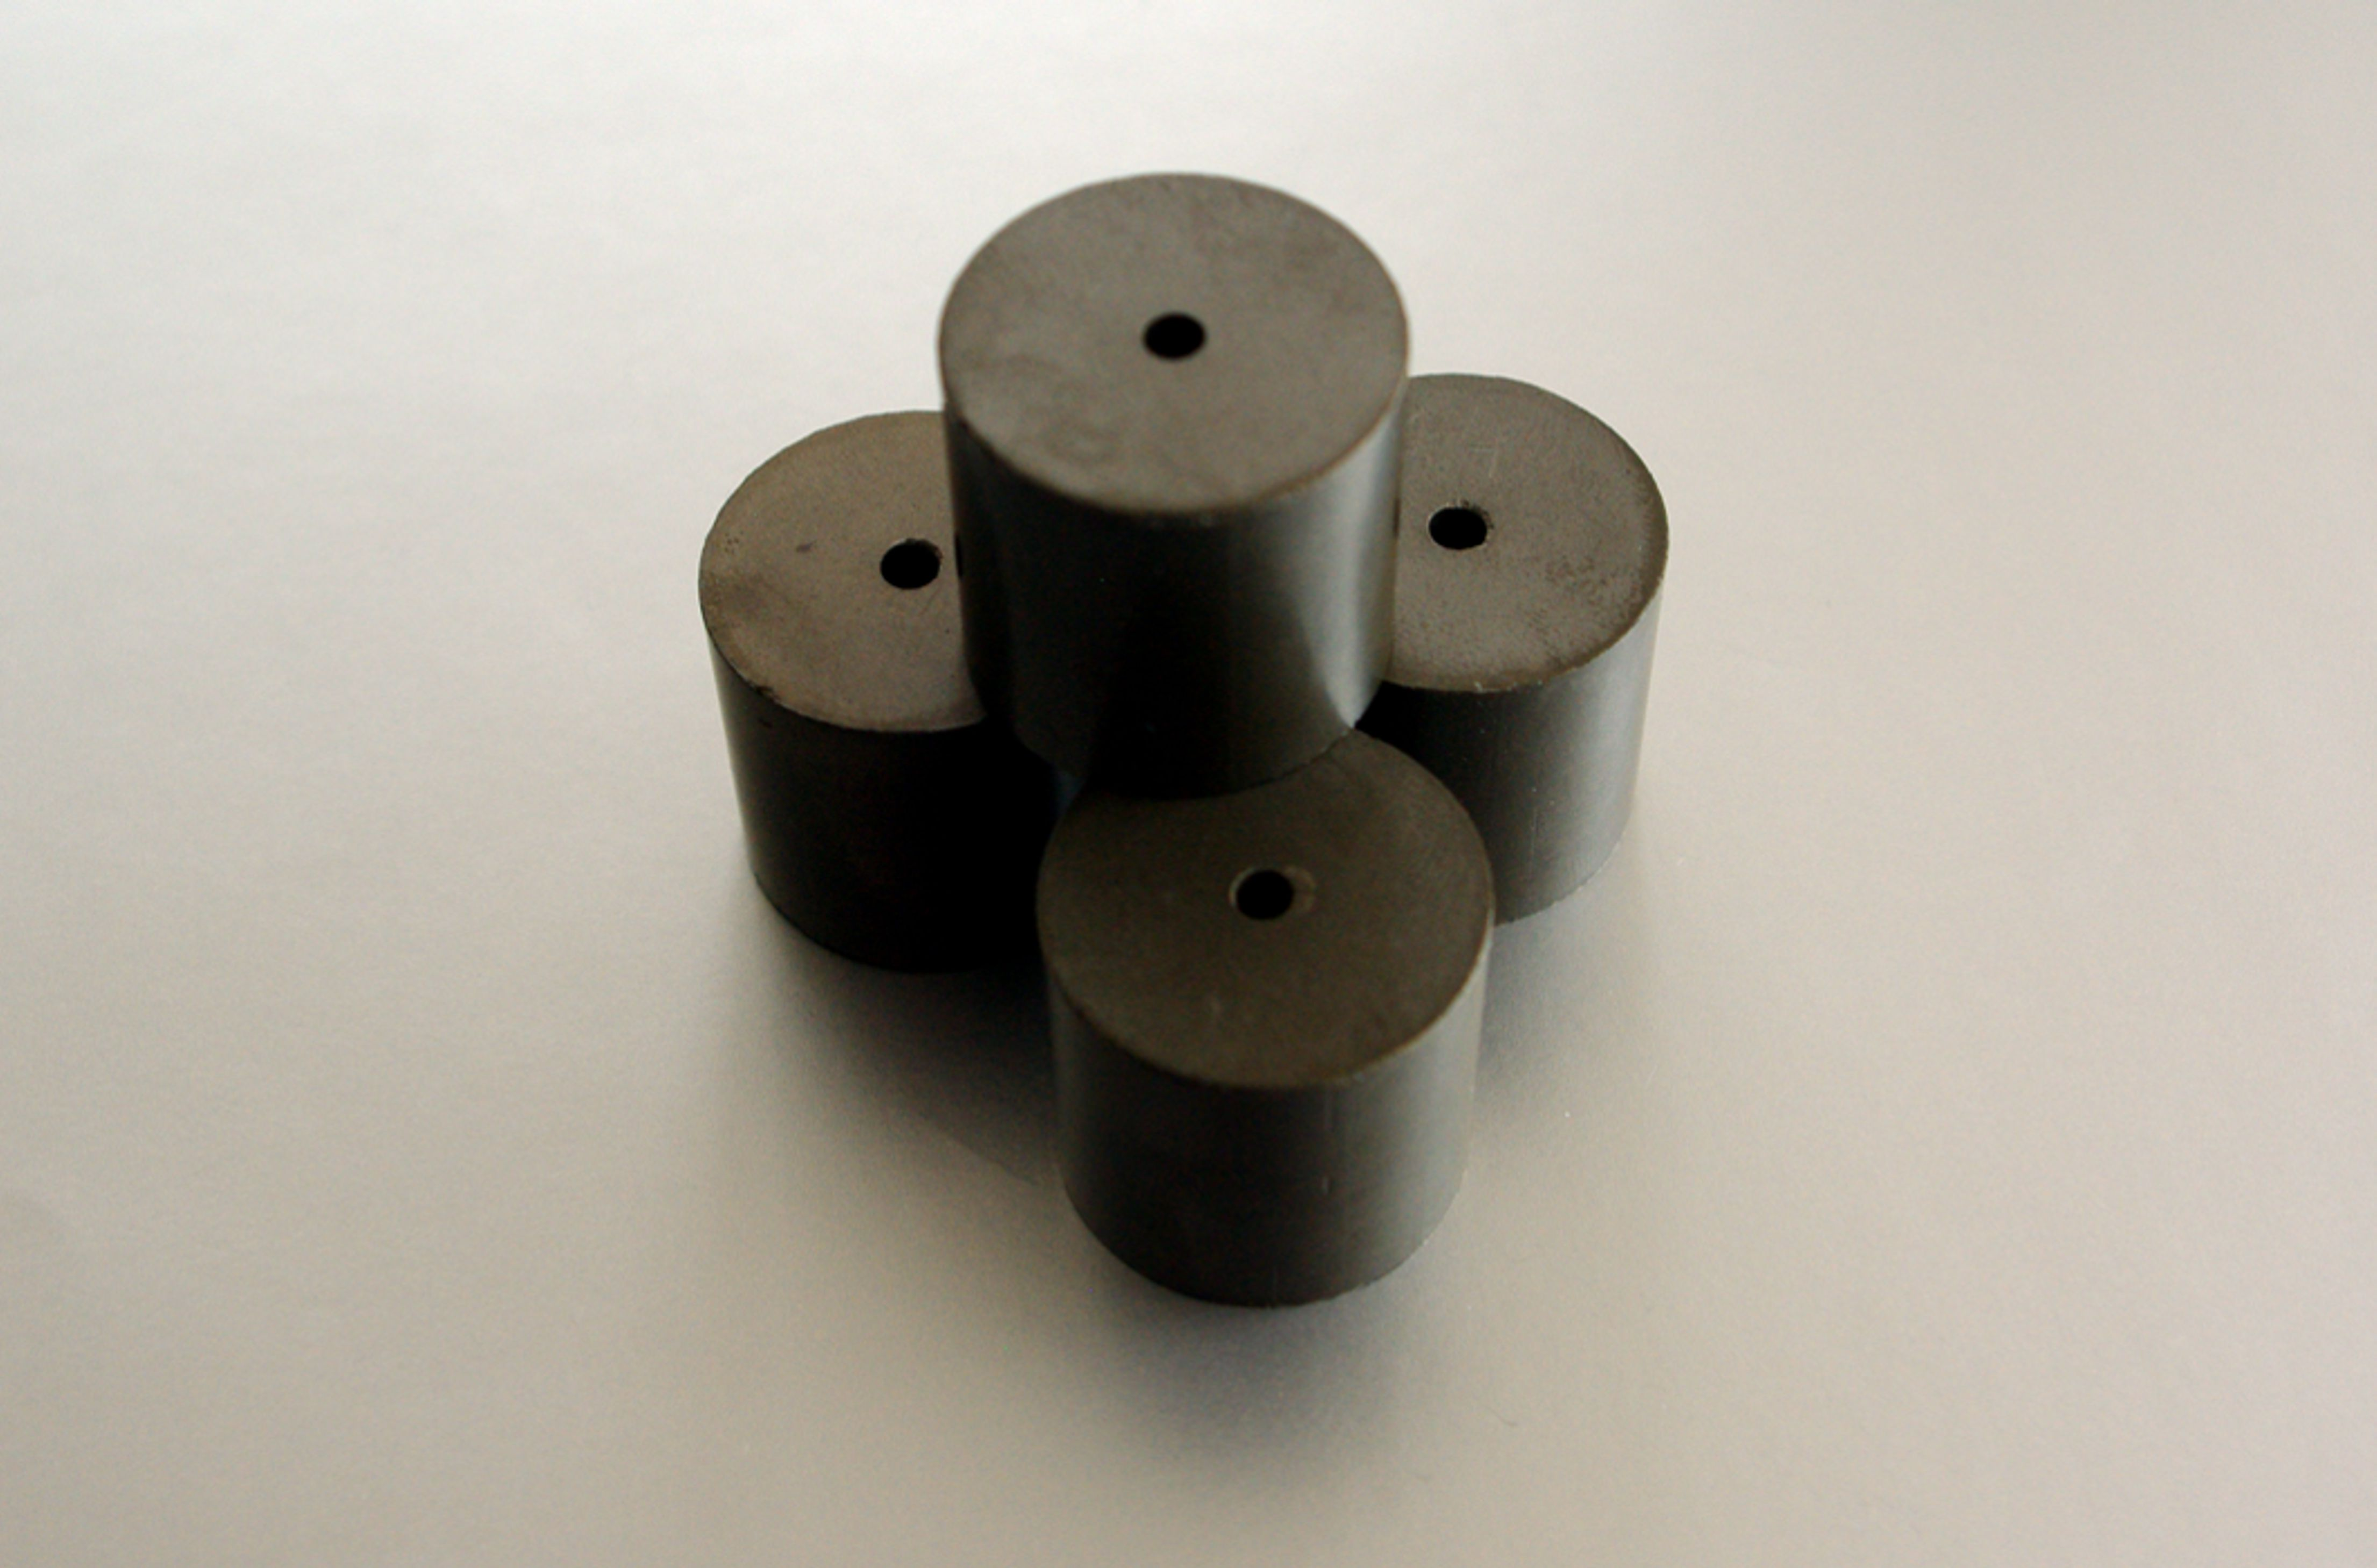 cylindrical parts made of a conductive high performance ceramic